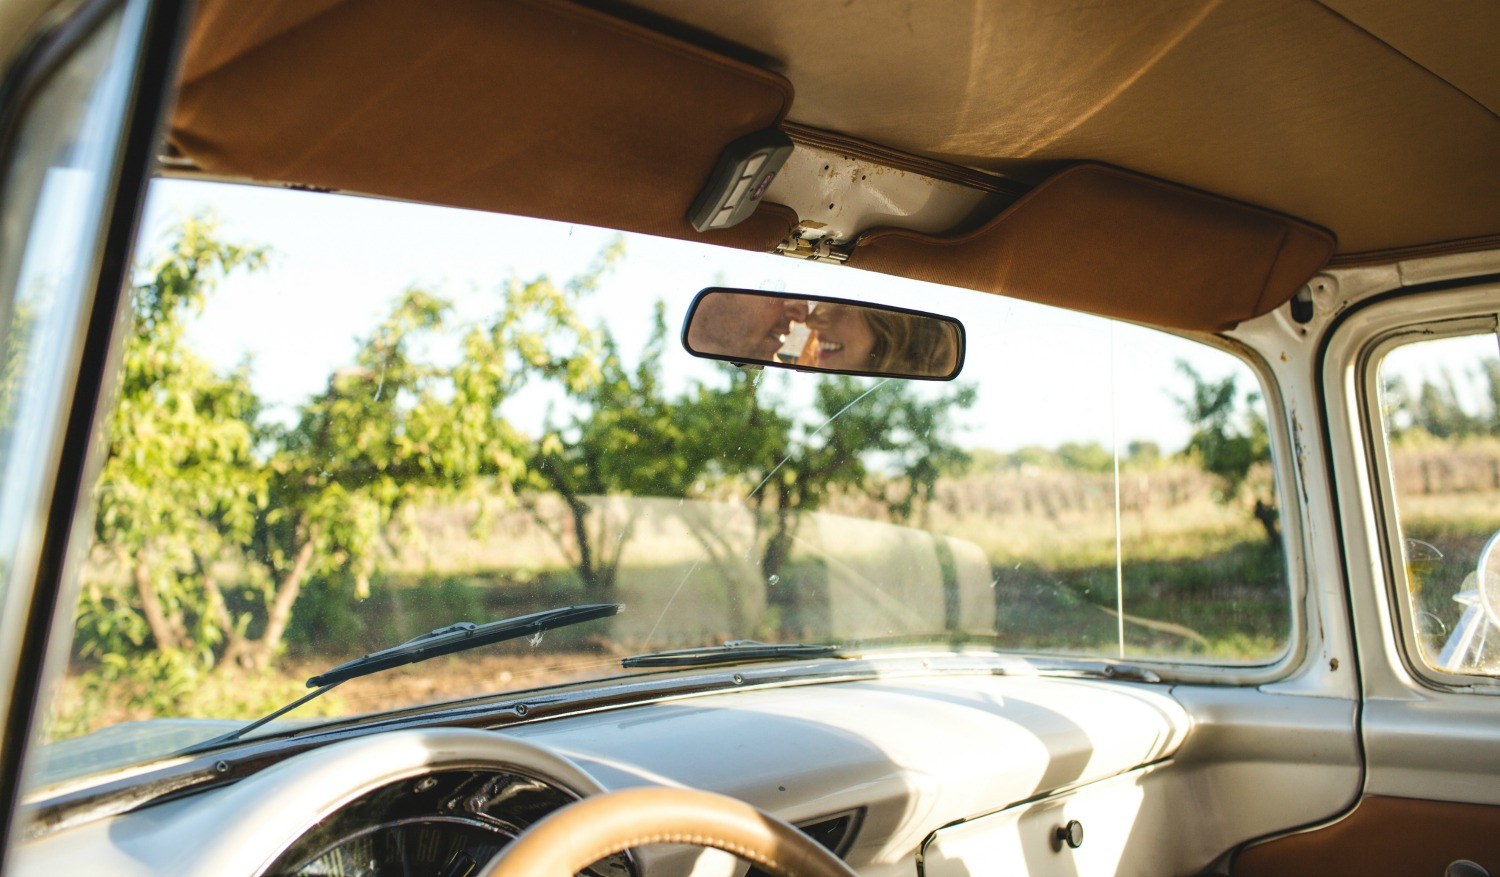 Essential Ways To Make Sure You Have The Best Driving Holiday With The Kids